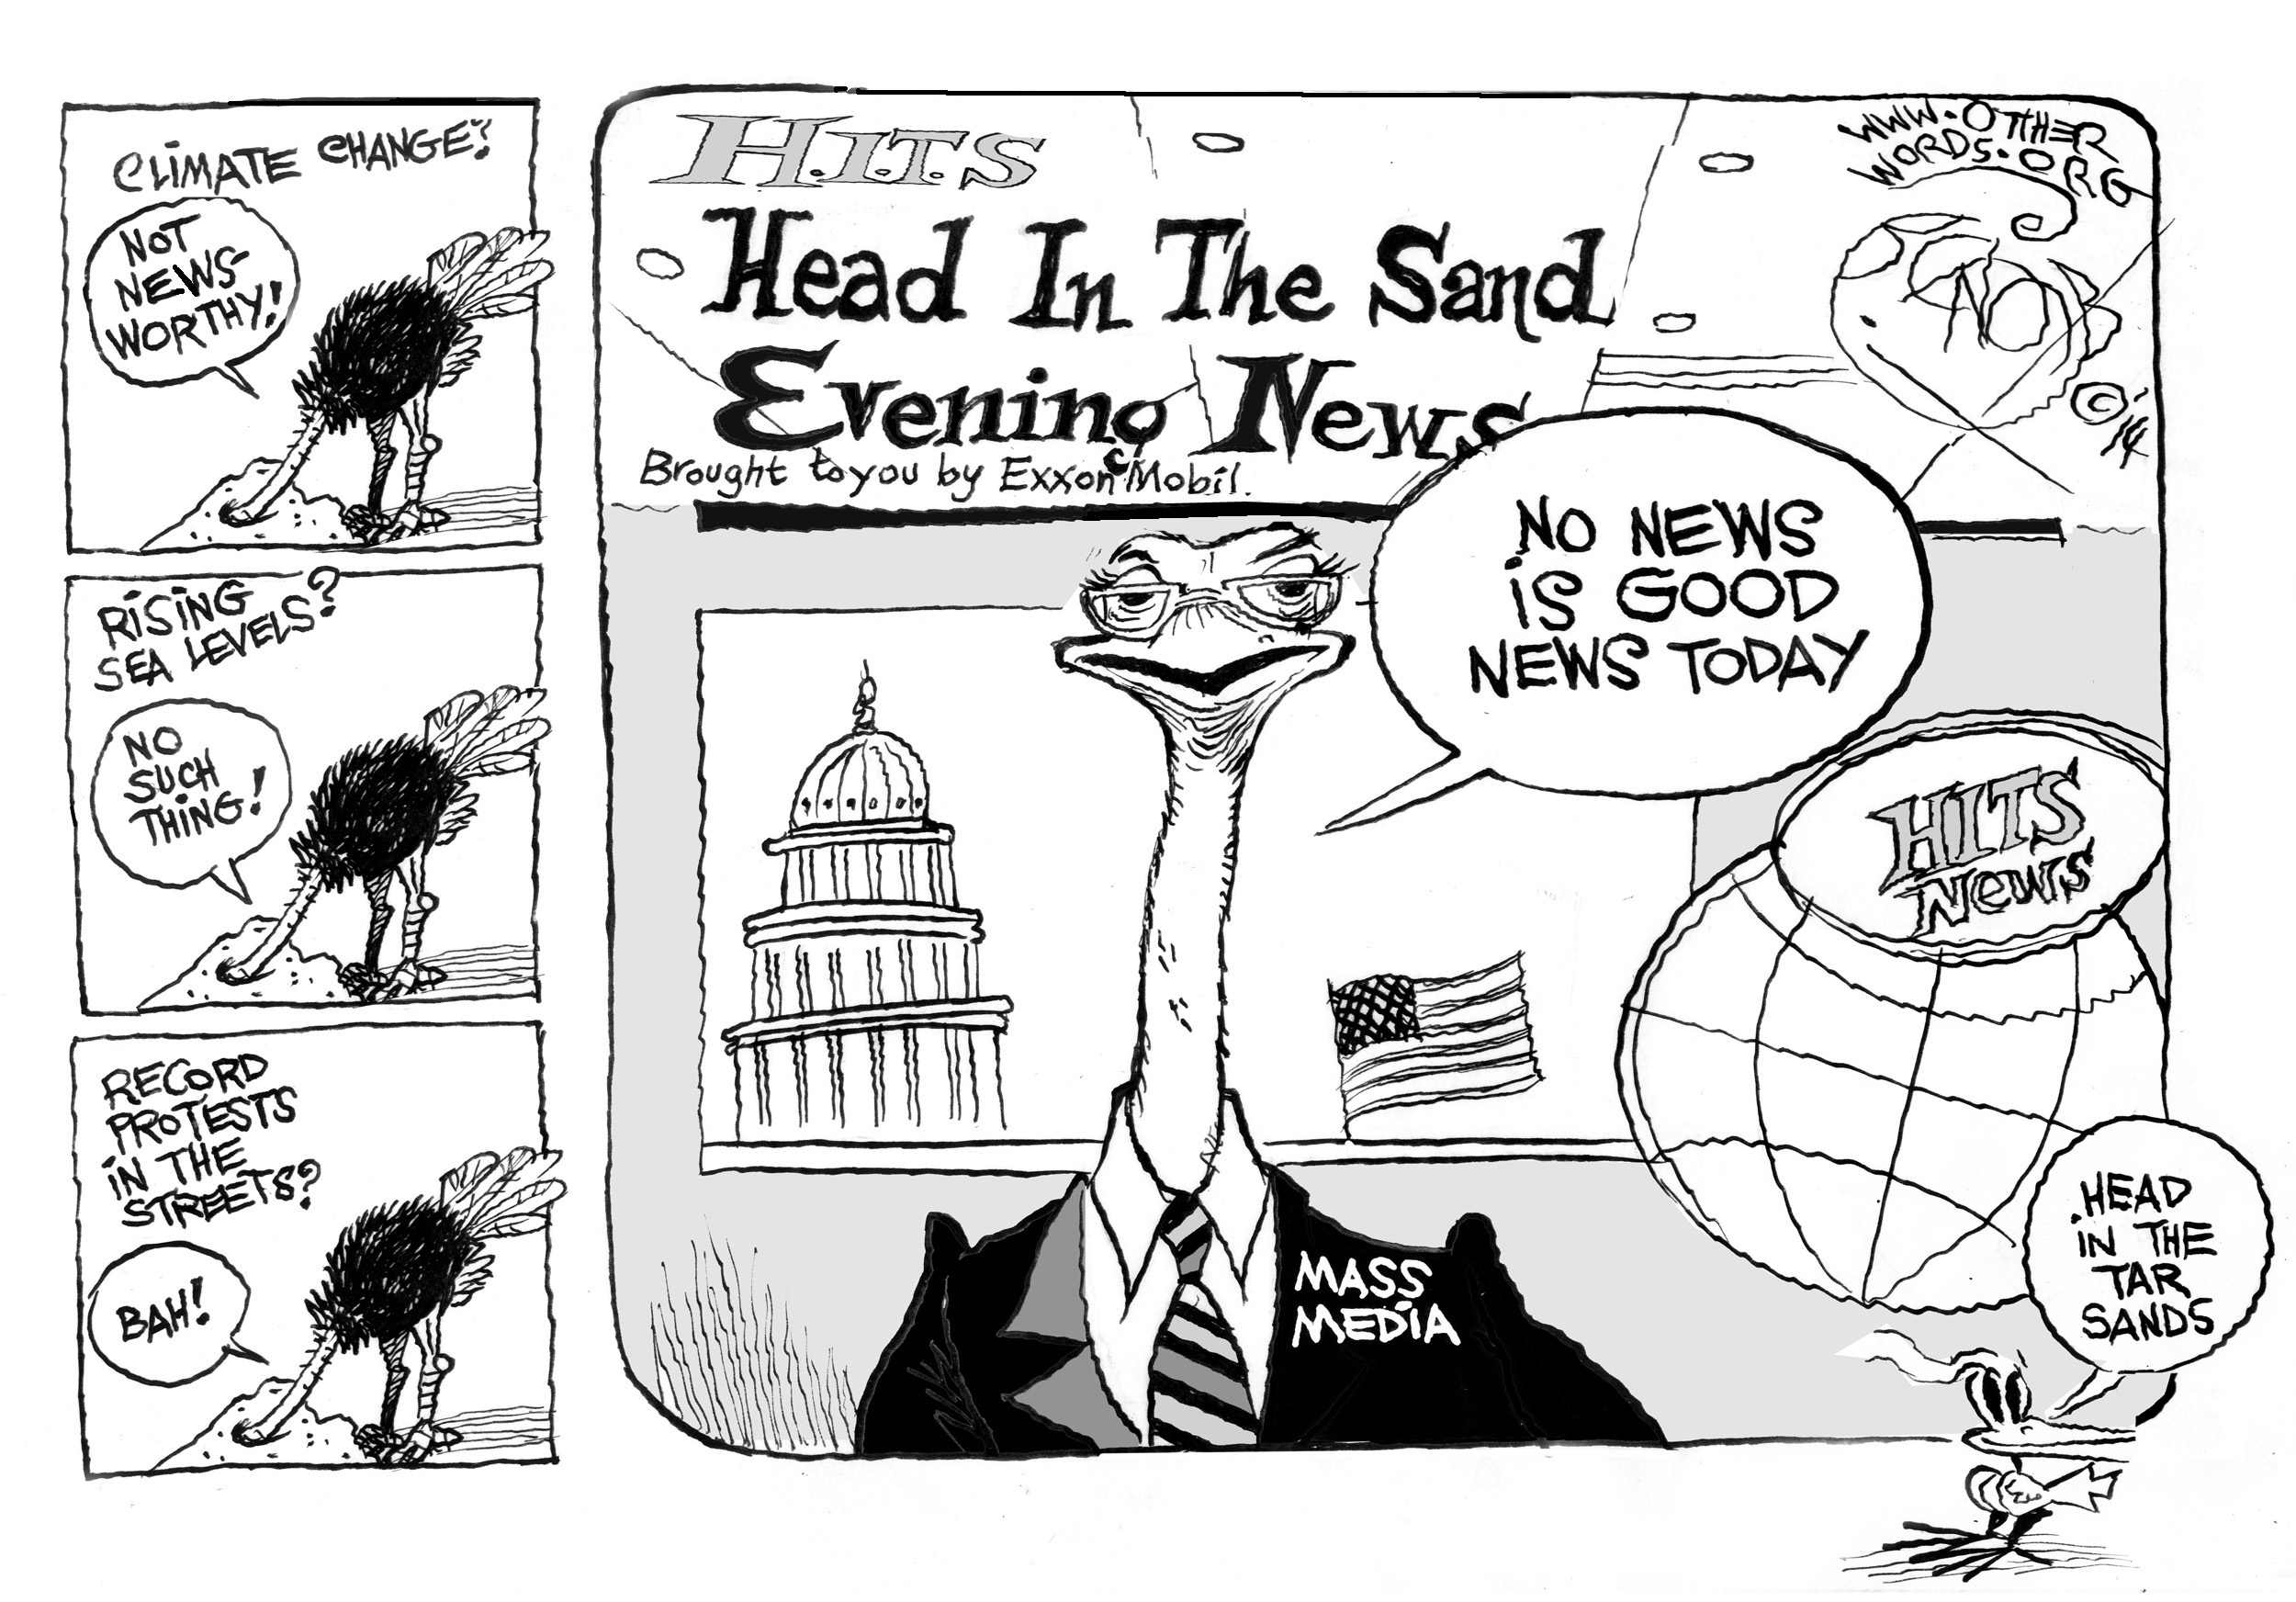 Head in the Tar Sands